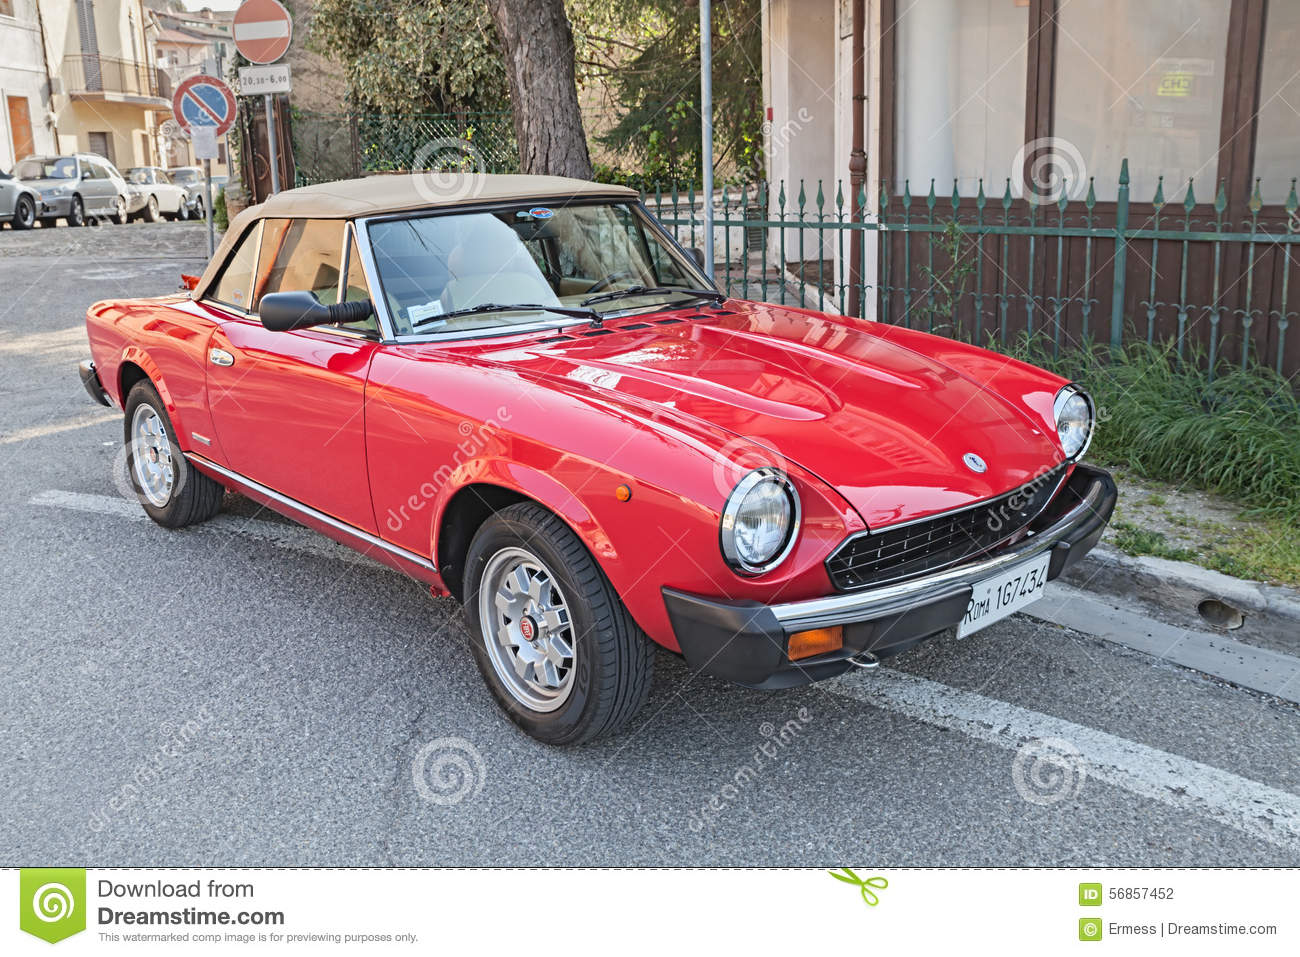 Vintage fiat 124 sport spider editorial image for Classic italo house zenhiser